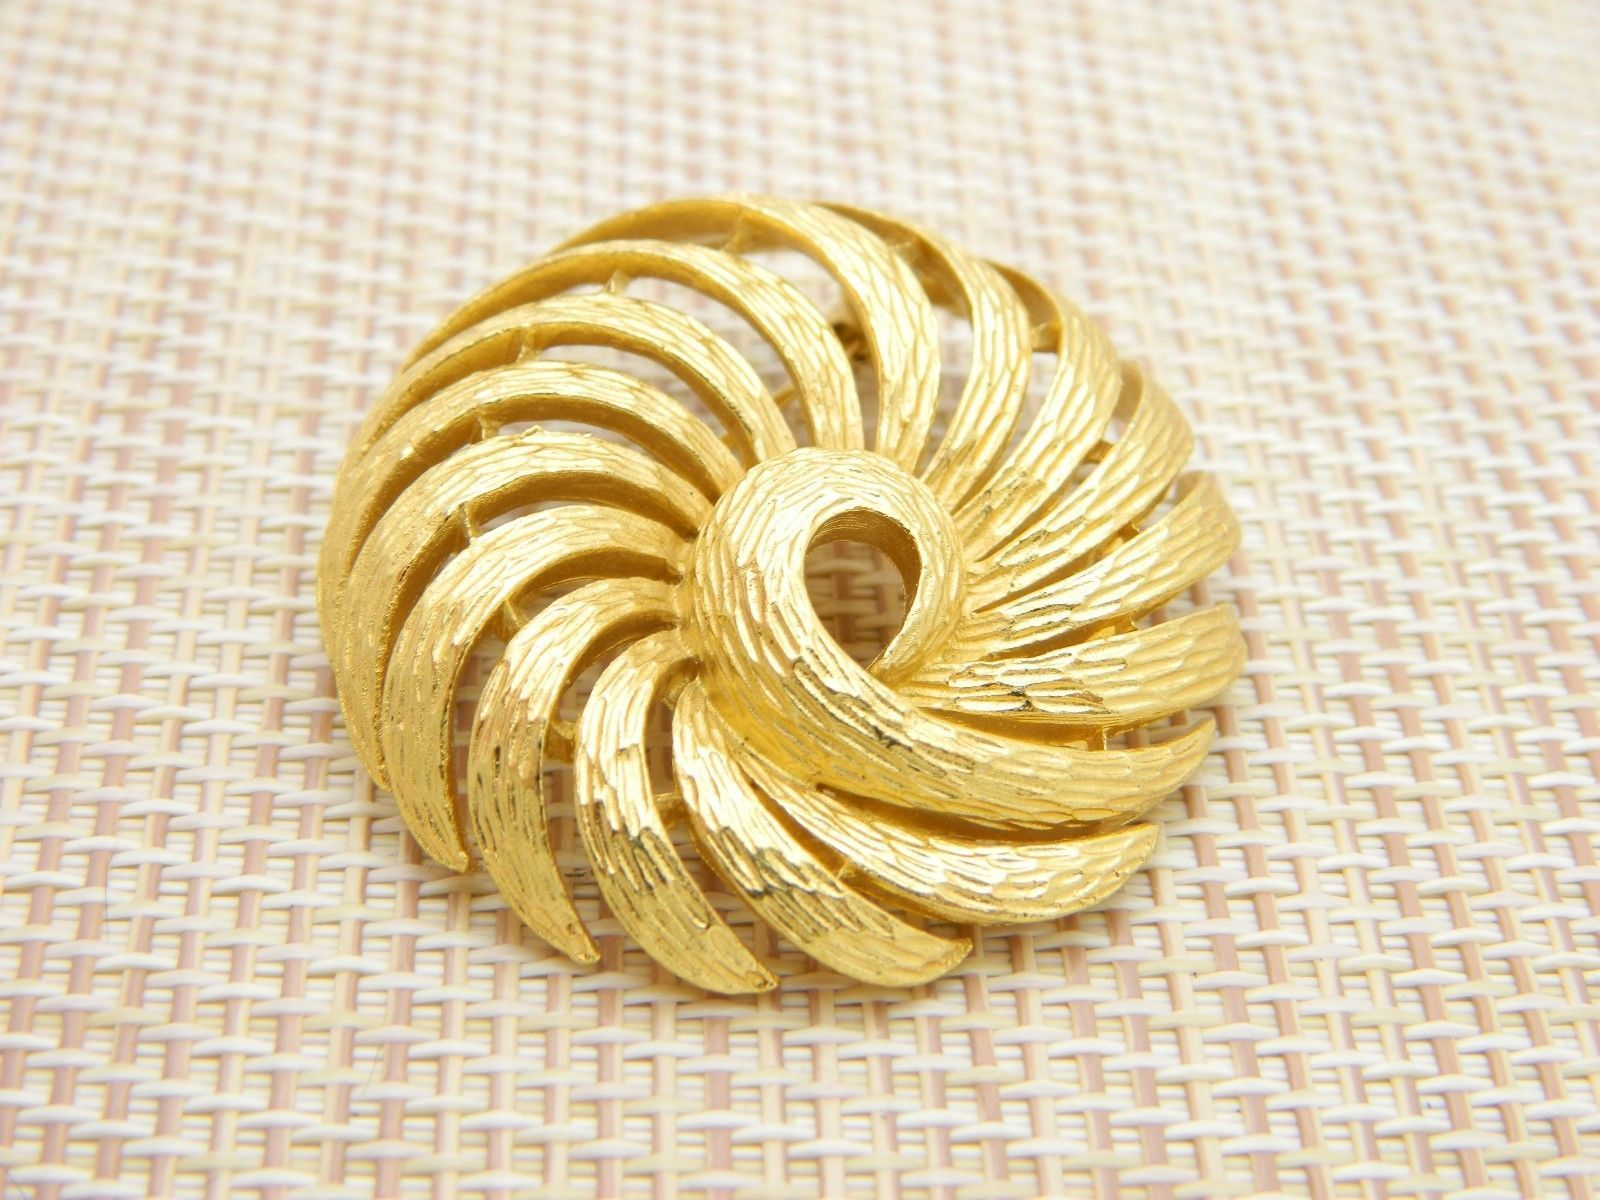 CROWN TRIFARI Gold Tone Mid Century Textured Swirl Abstract Pin Brooch (B)